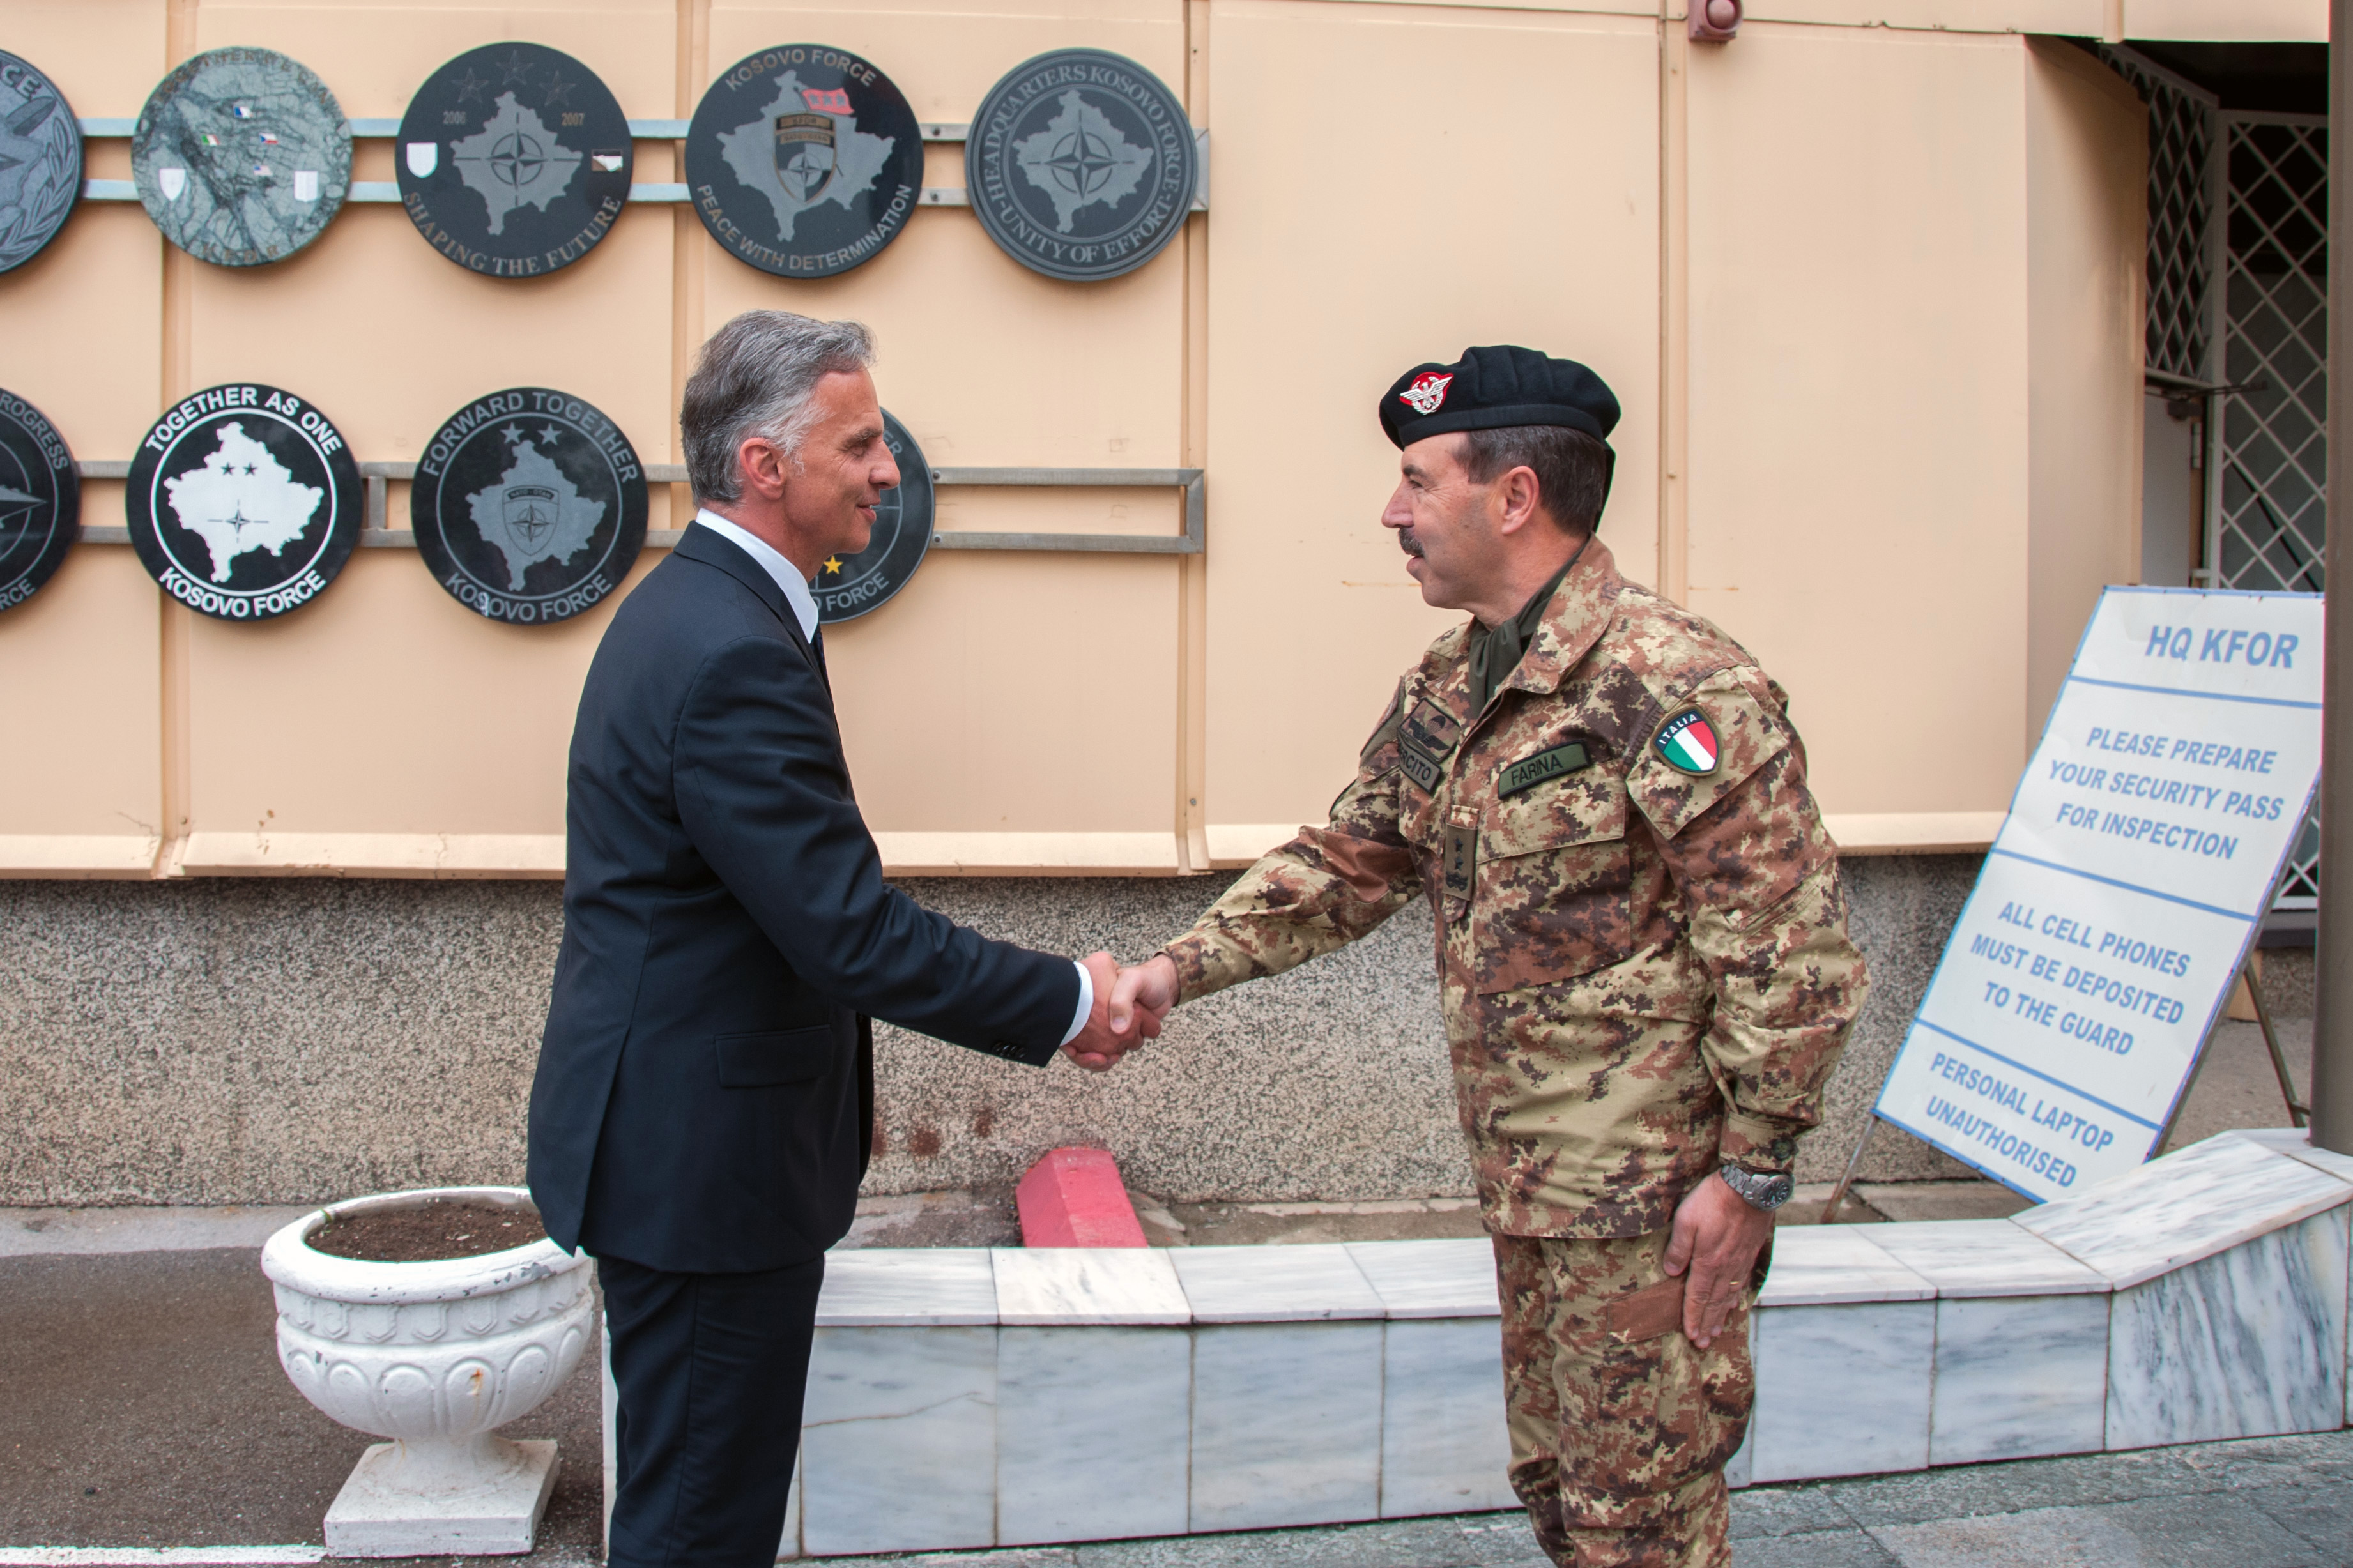 Salvatore Farina, commandant of the KFOR, welcomes President Didier Burkhalter